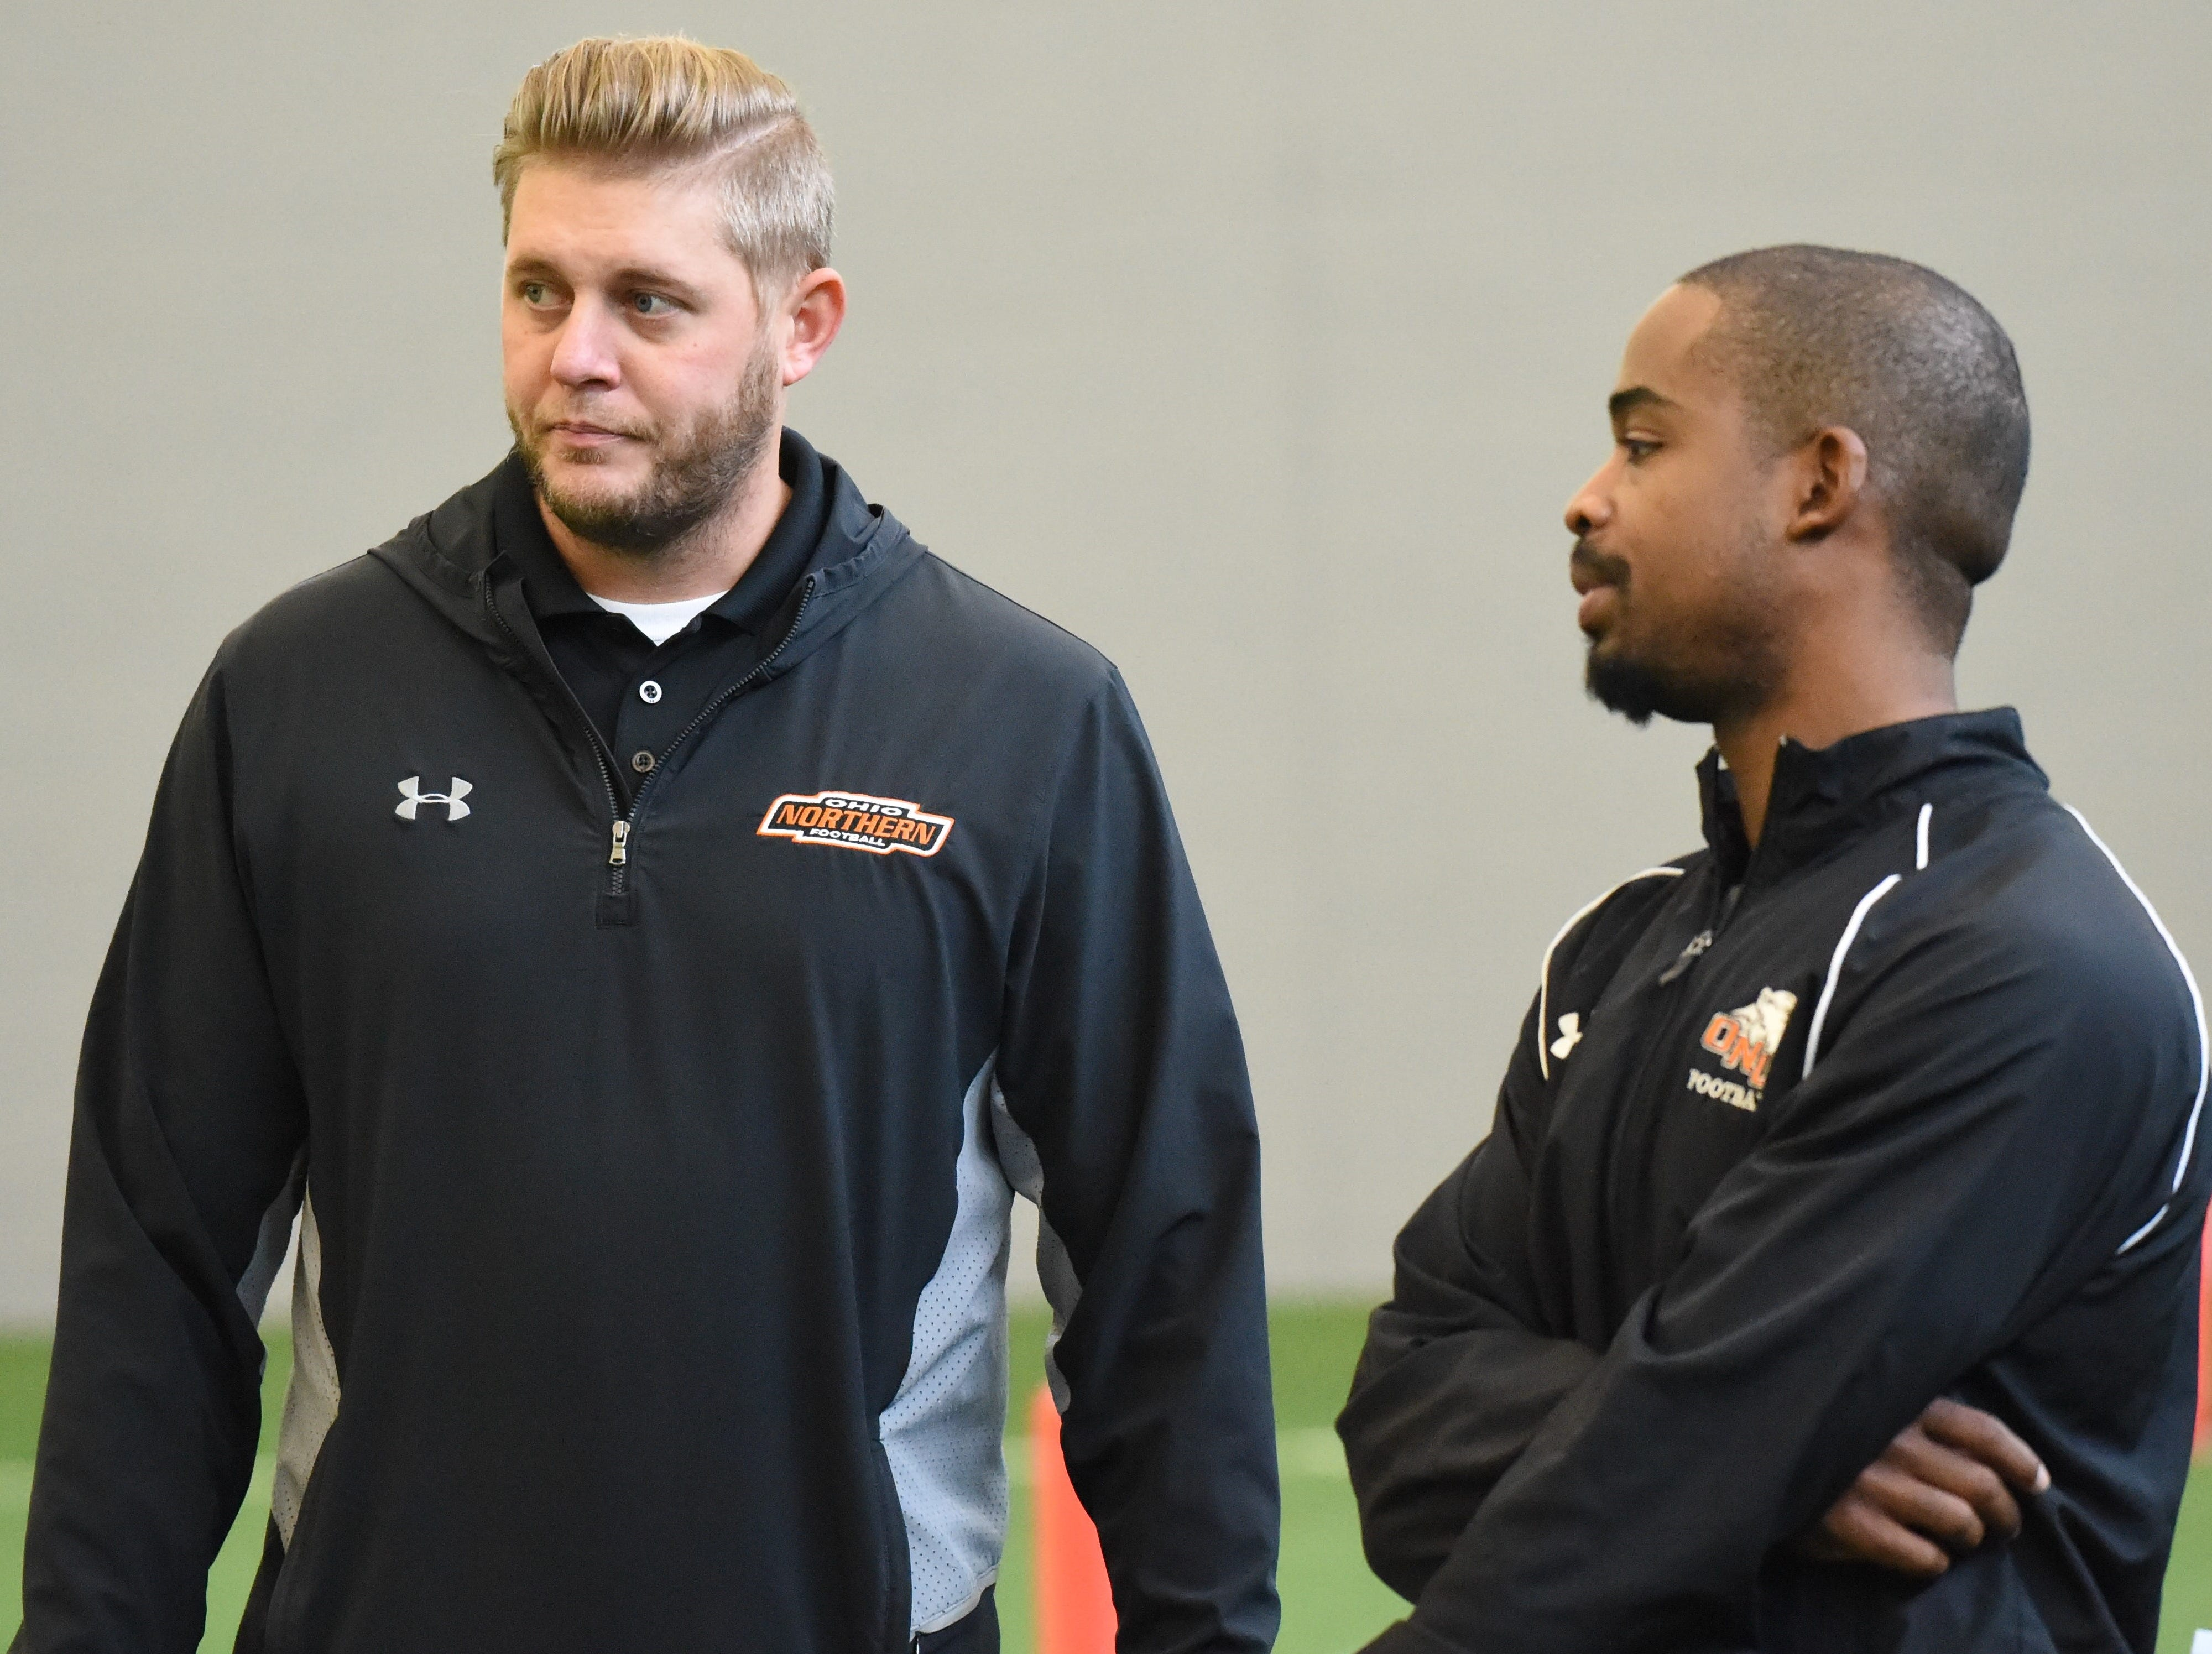 A number of coaches and scouts from colleges watched Sunday's game at Legacy Center, including Northern Ohio University's Sean Buckley (left) and Dru Richardson.